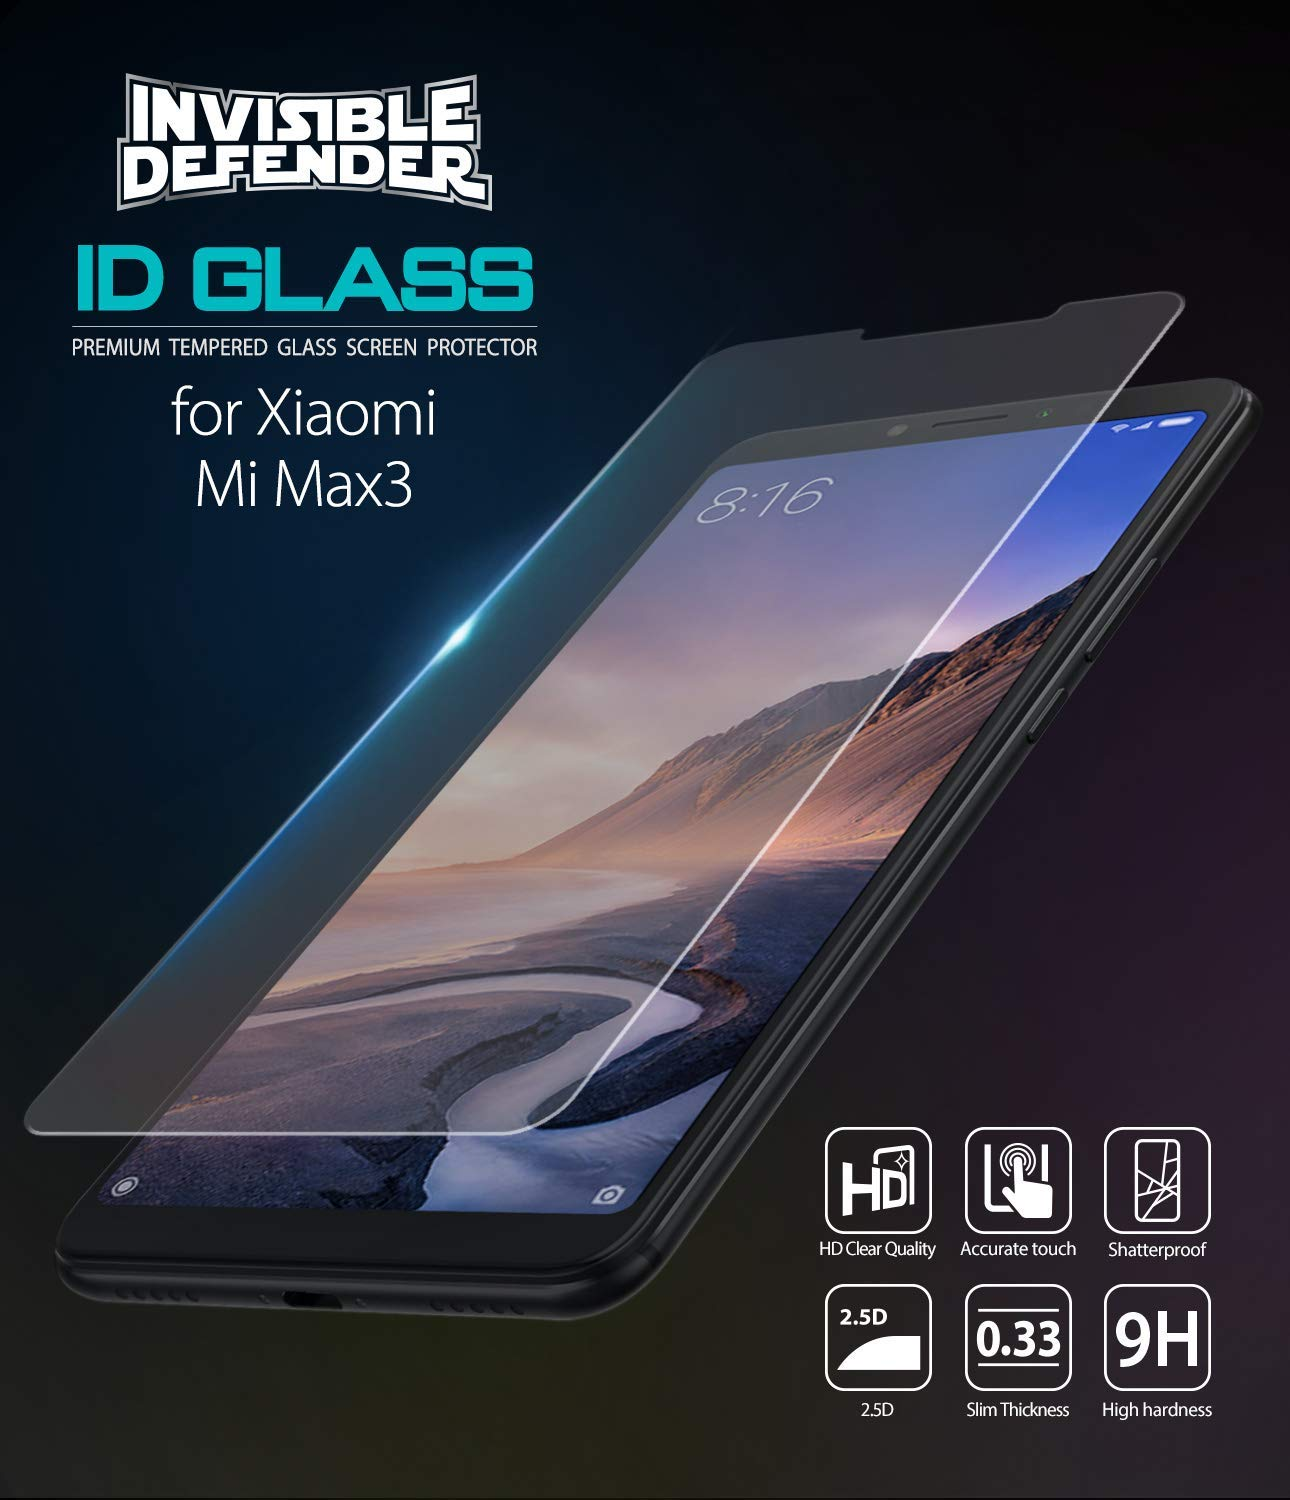 xiaomi mi max 3 invisible defender glass